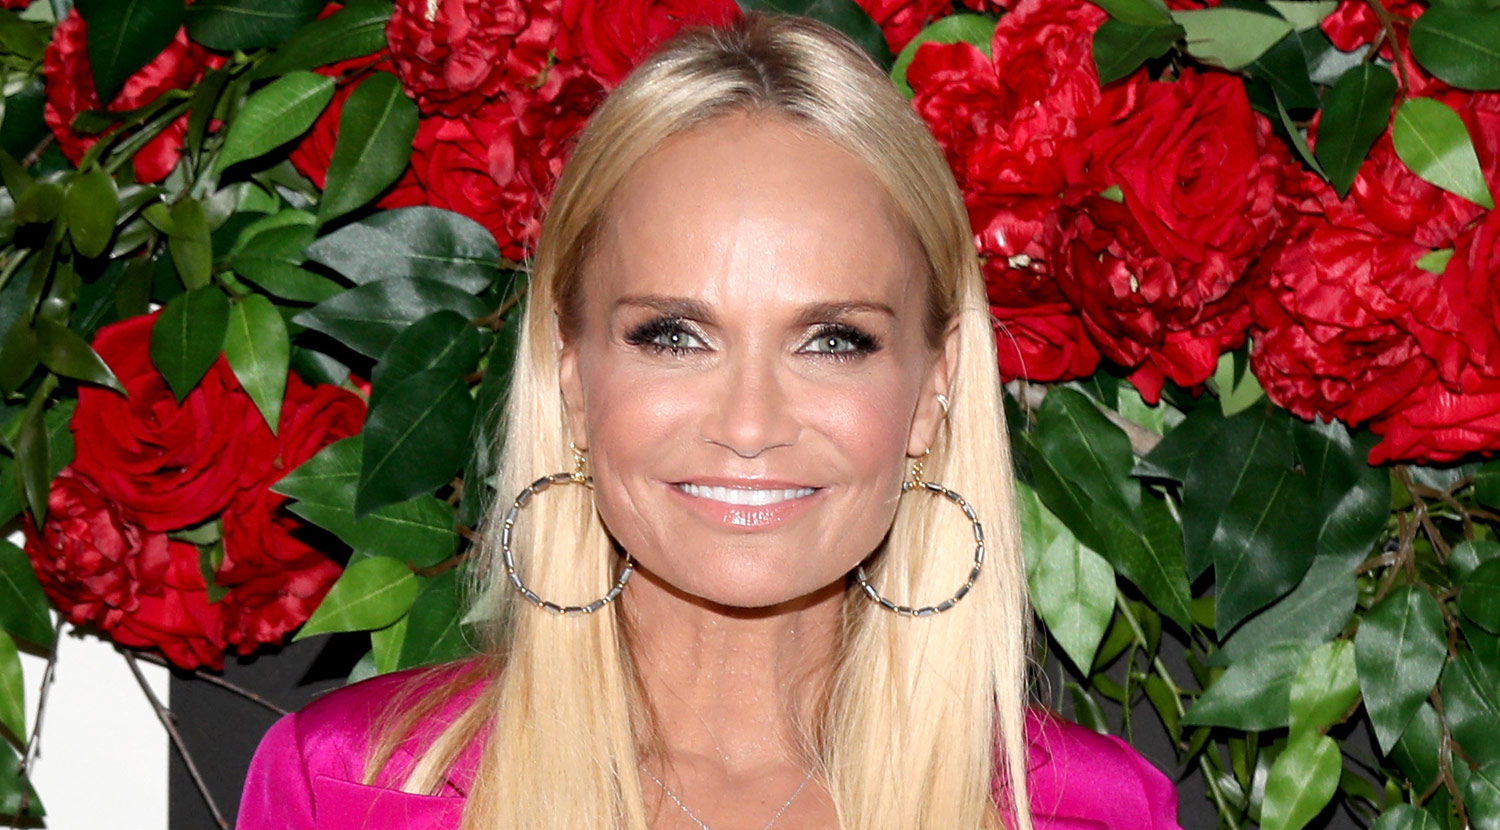 kristin chenoweth wdw dating history On 24-7-1968 kristin chenoweth (nickname: dawn) was born in broken arrow, oklahoma, united states she made her 7 million dollar fortune with the pink panther, the boy next door, you again the actress currently single her starsign is leo and she is now 50 years of age.